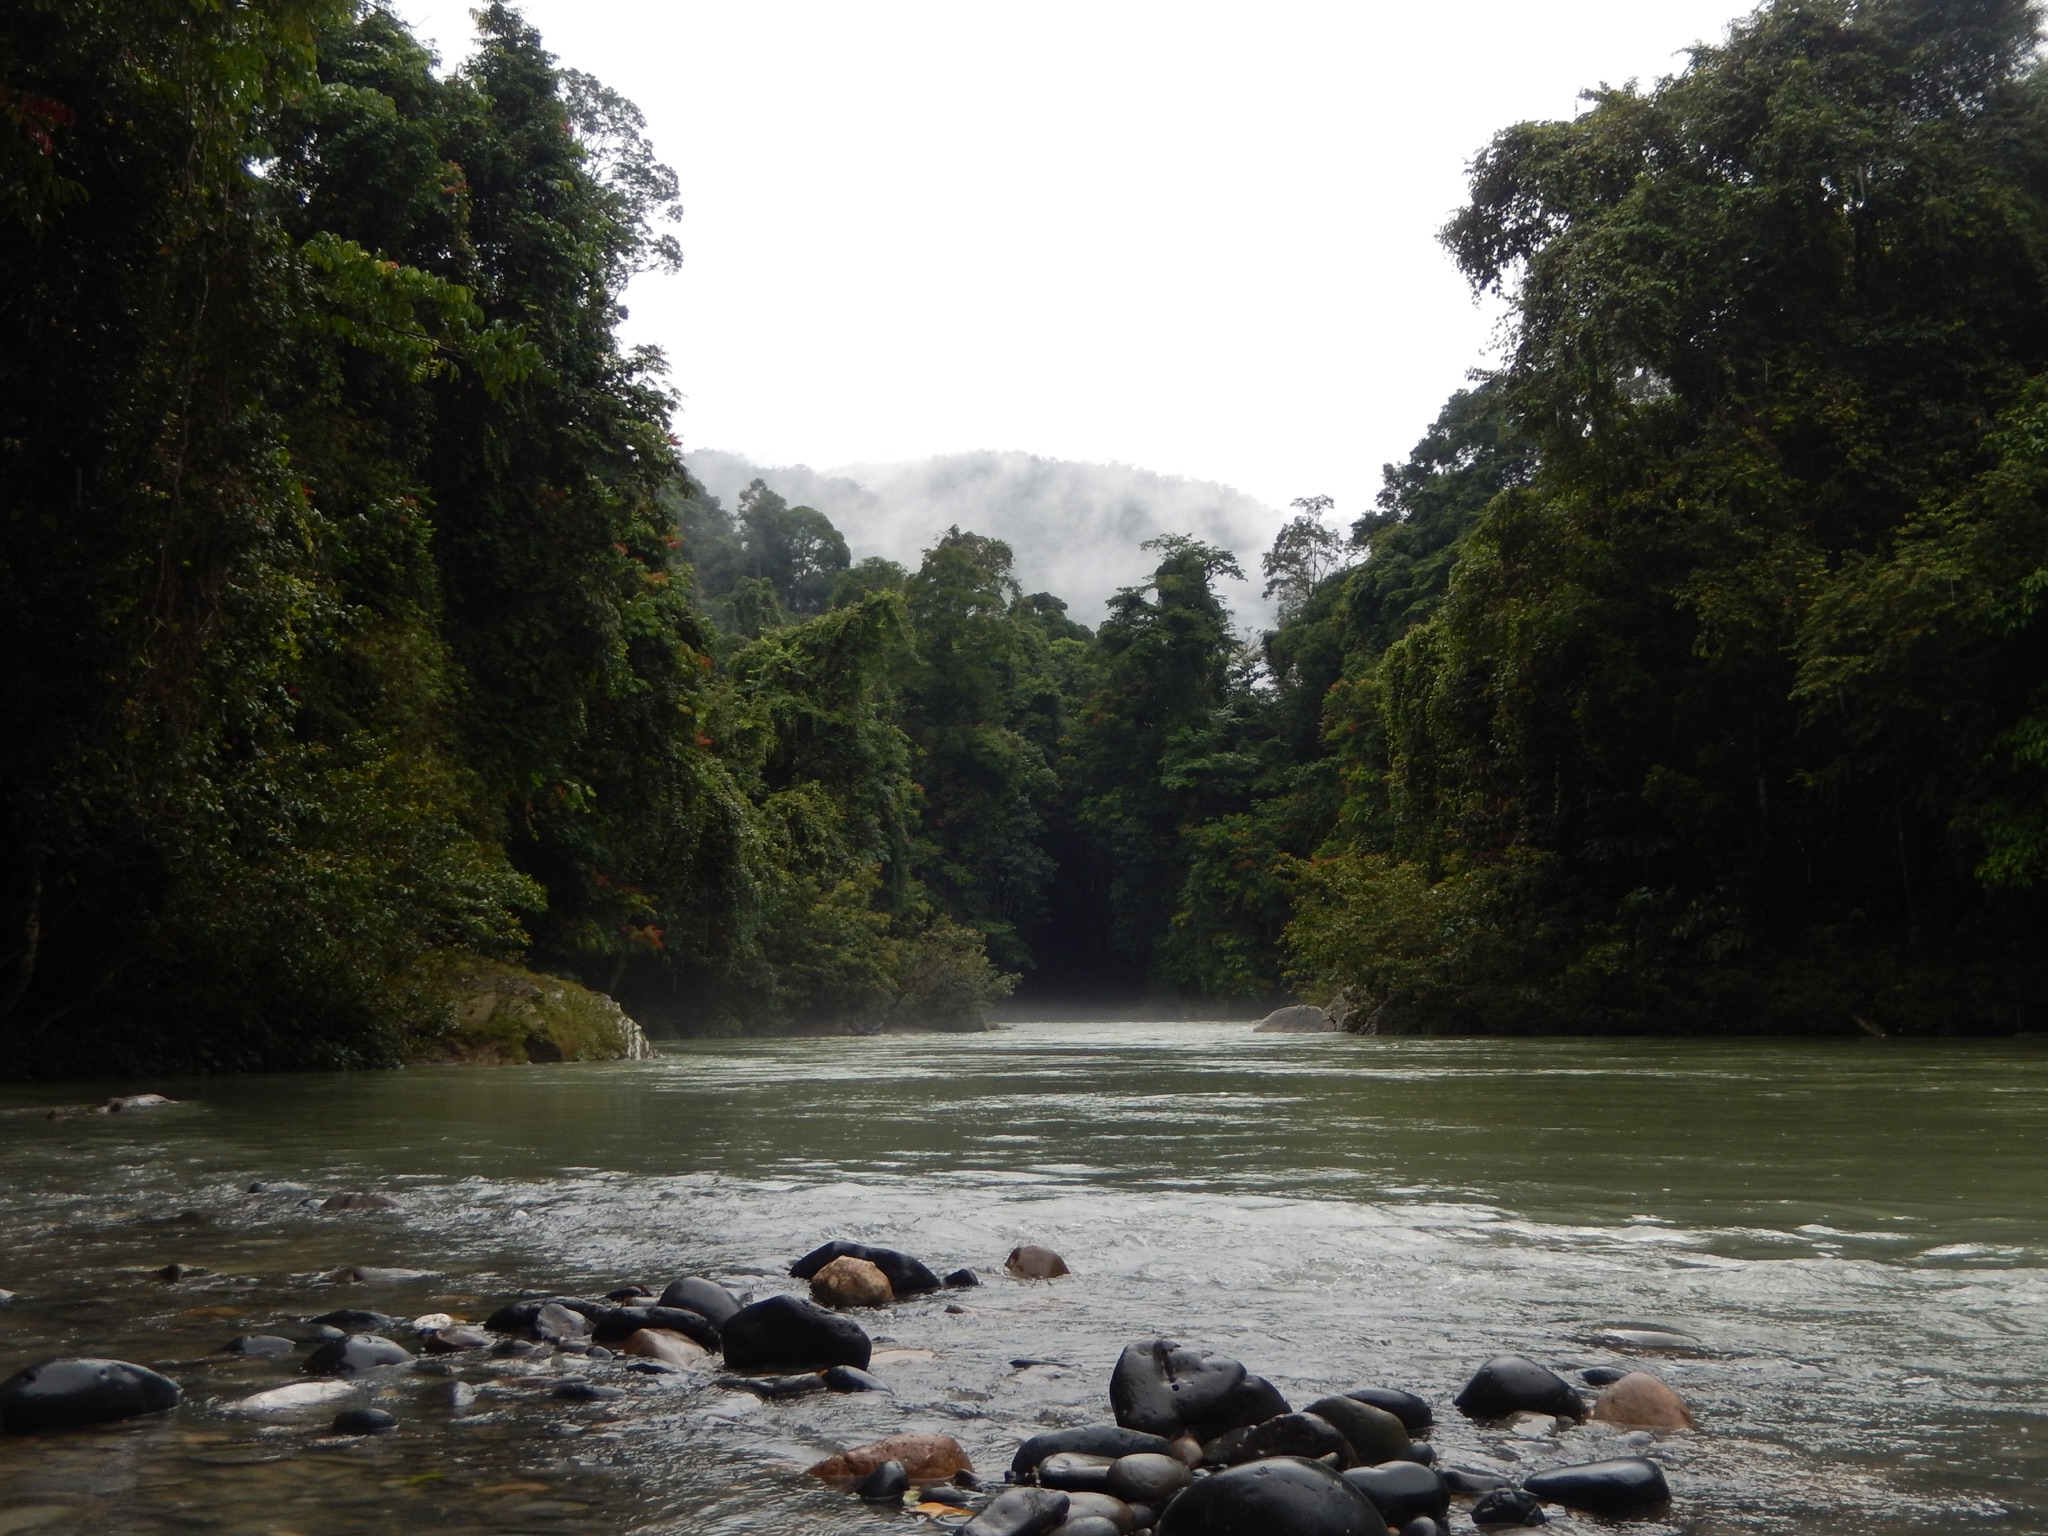 Sumatra Jungle River